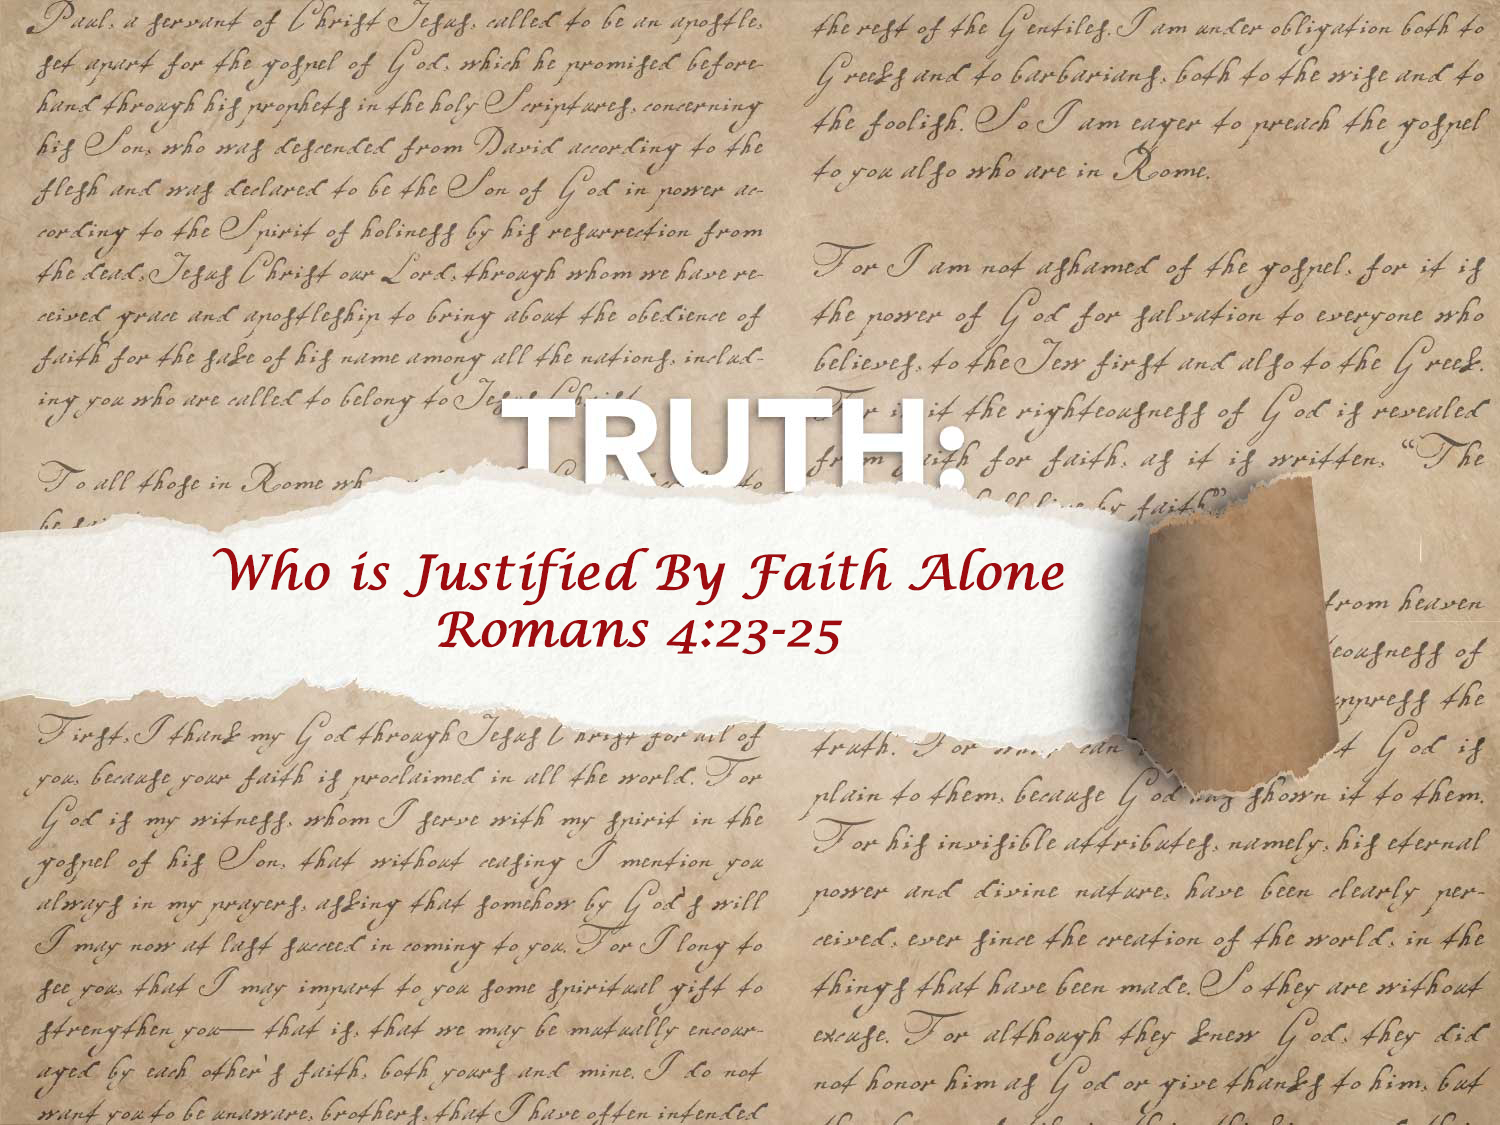 Why is justification by faith such an important doctrine?